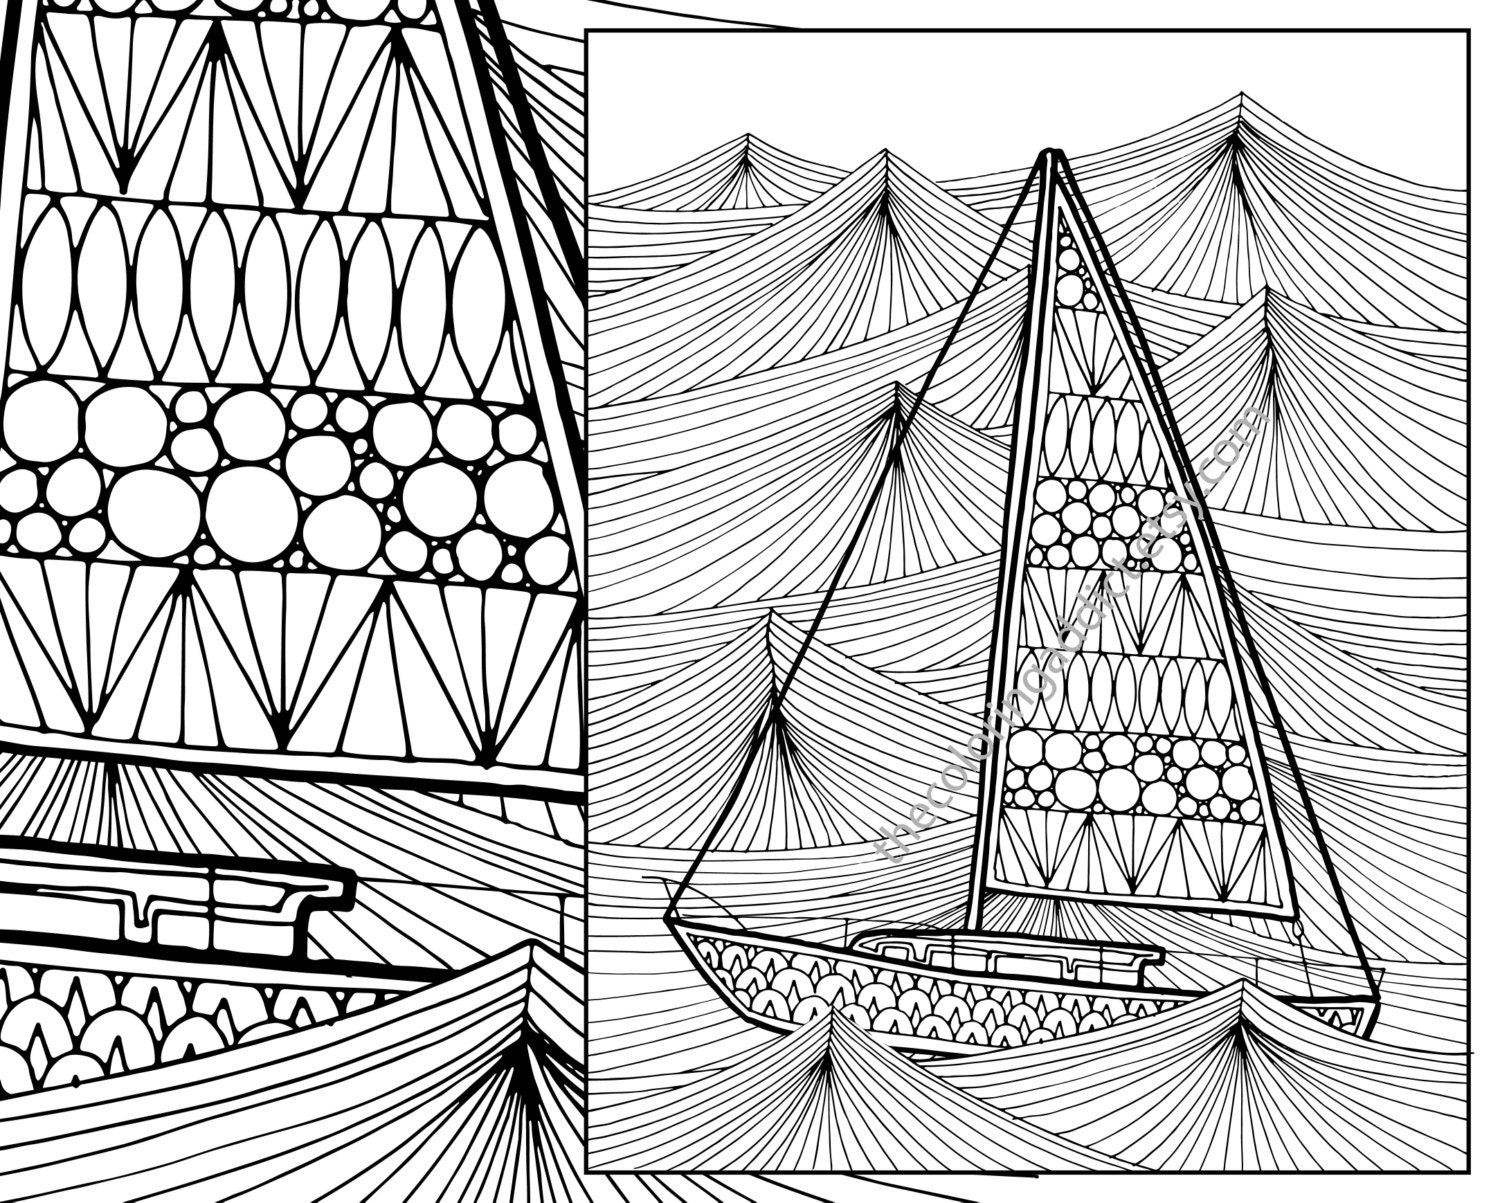 Ocean Wave Adult Coloring Page Sailboat Adult Coloring Sheet